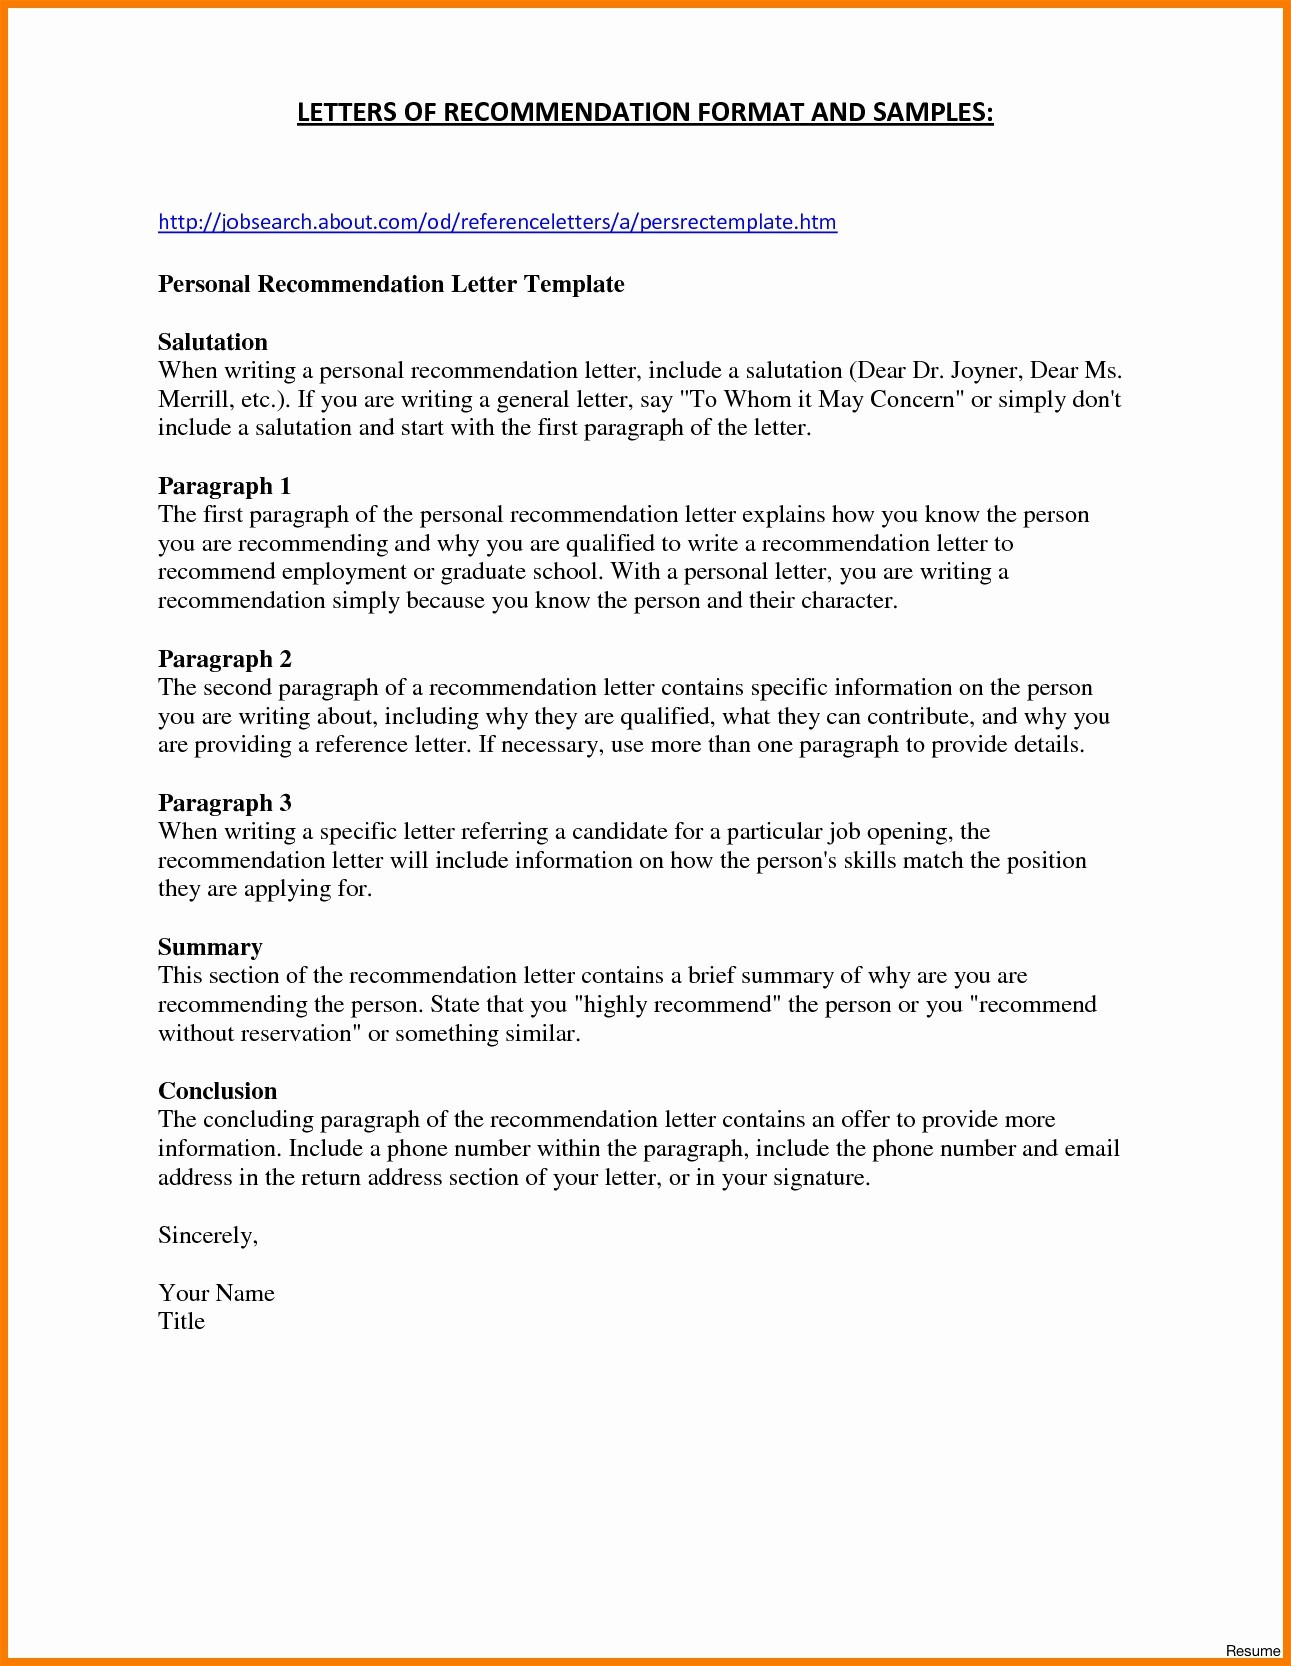 Business reference letter template word samples letter templates business reference letter template word business letter format template word inspirationa business cover friedricerecipe Image collections